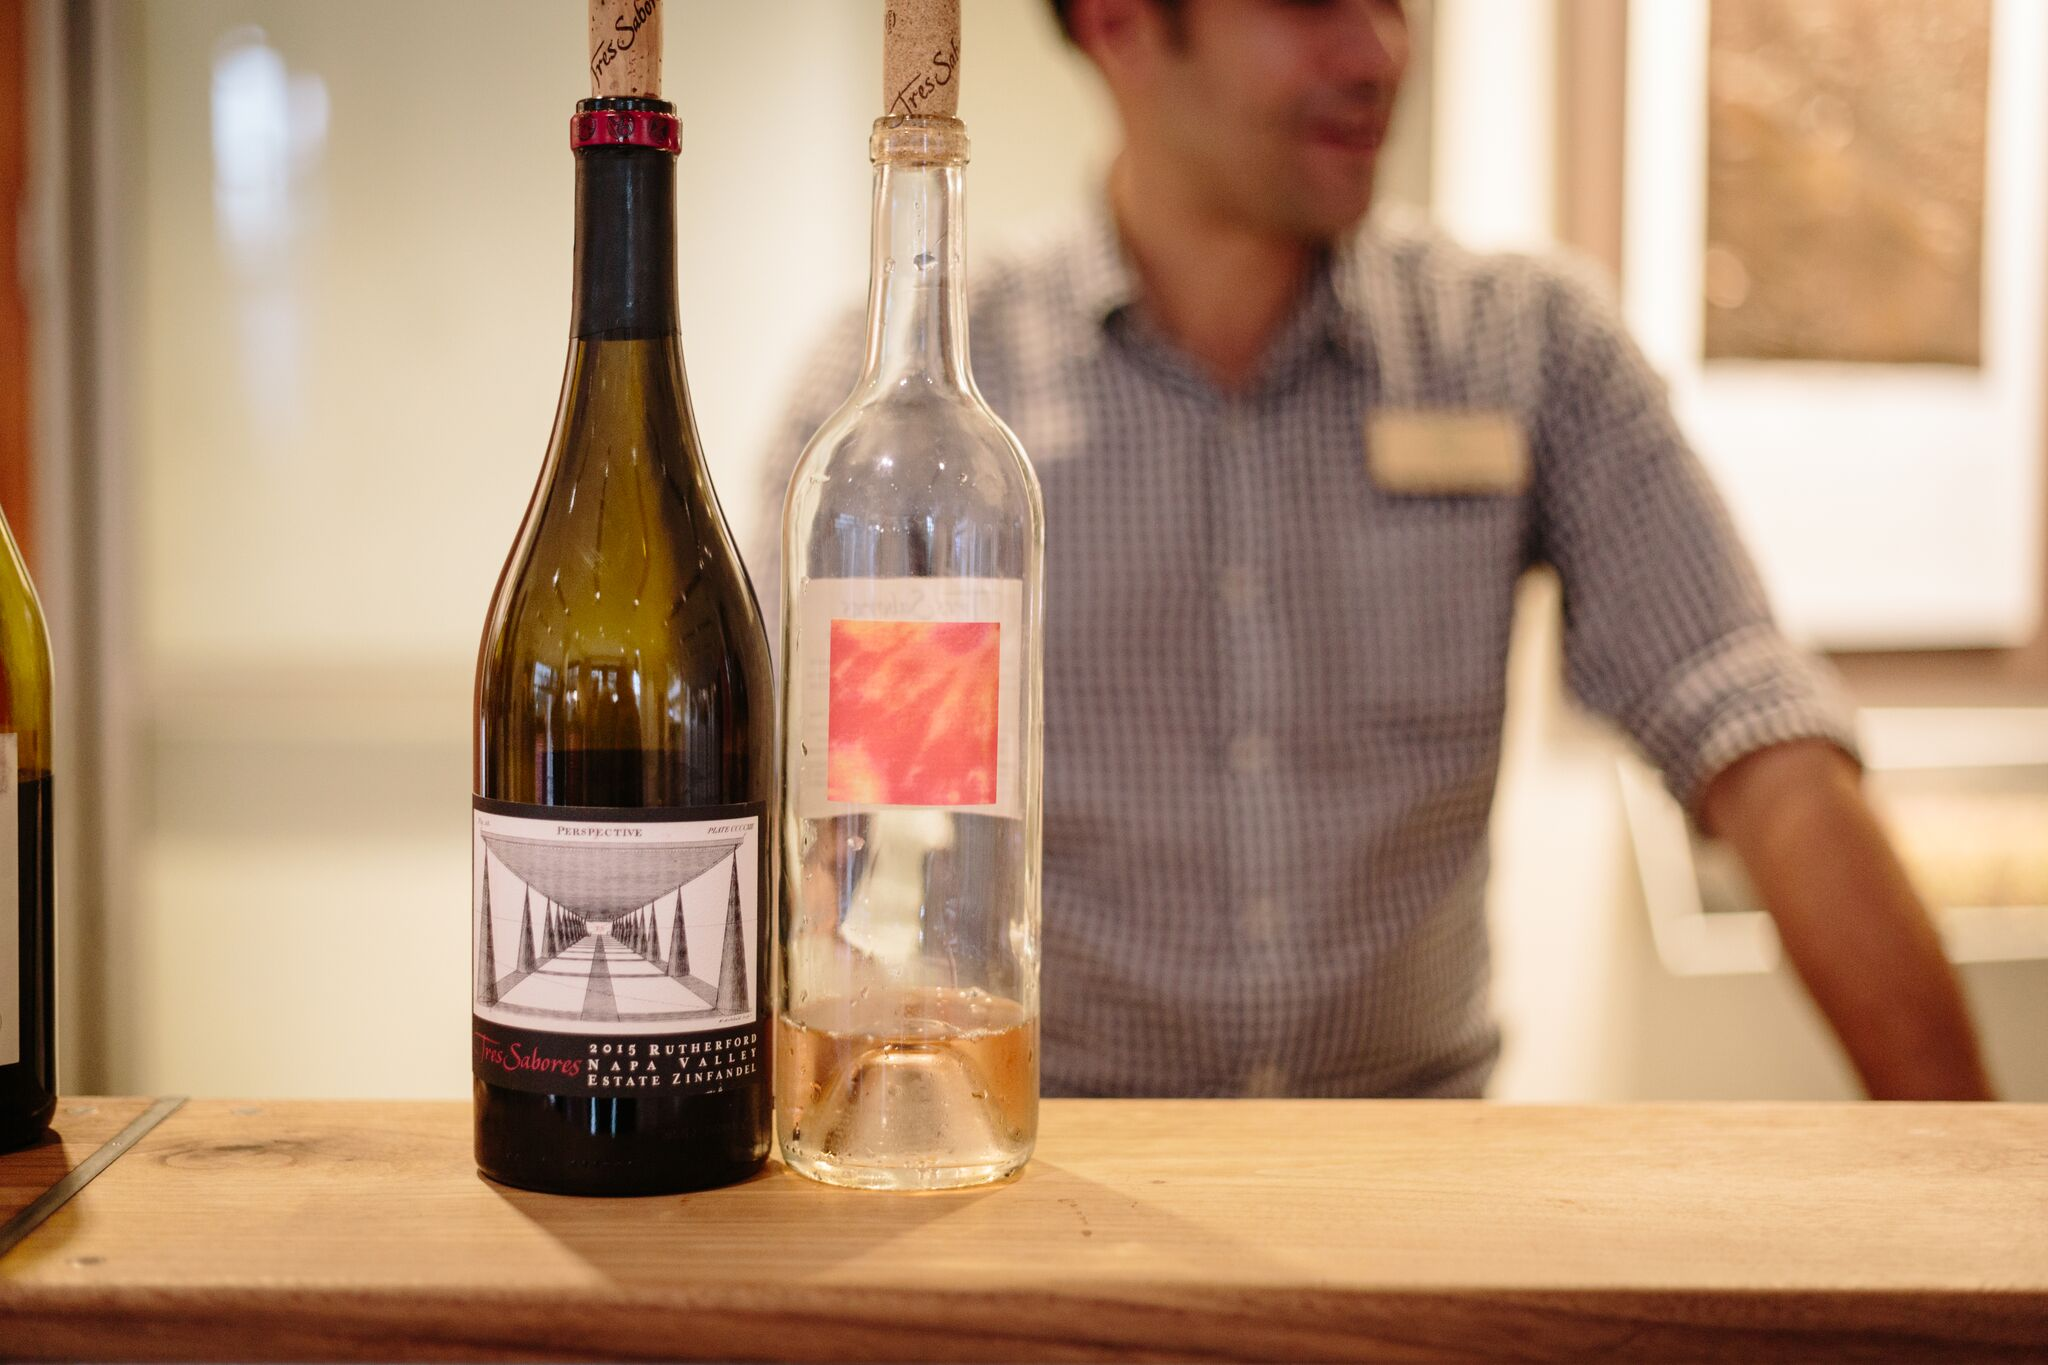 Wine and lectures go together at the CIA Presents Copia Conversations events.